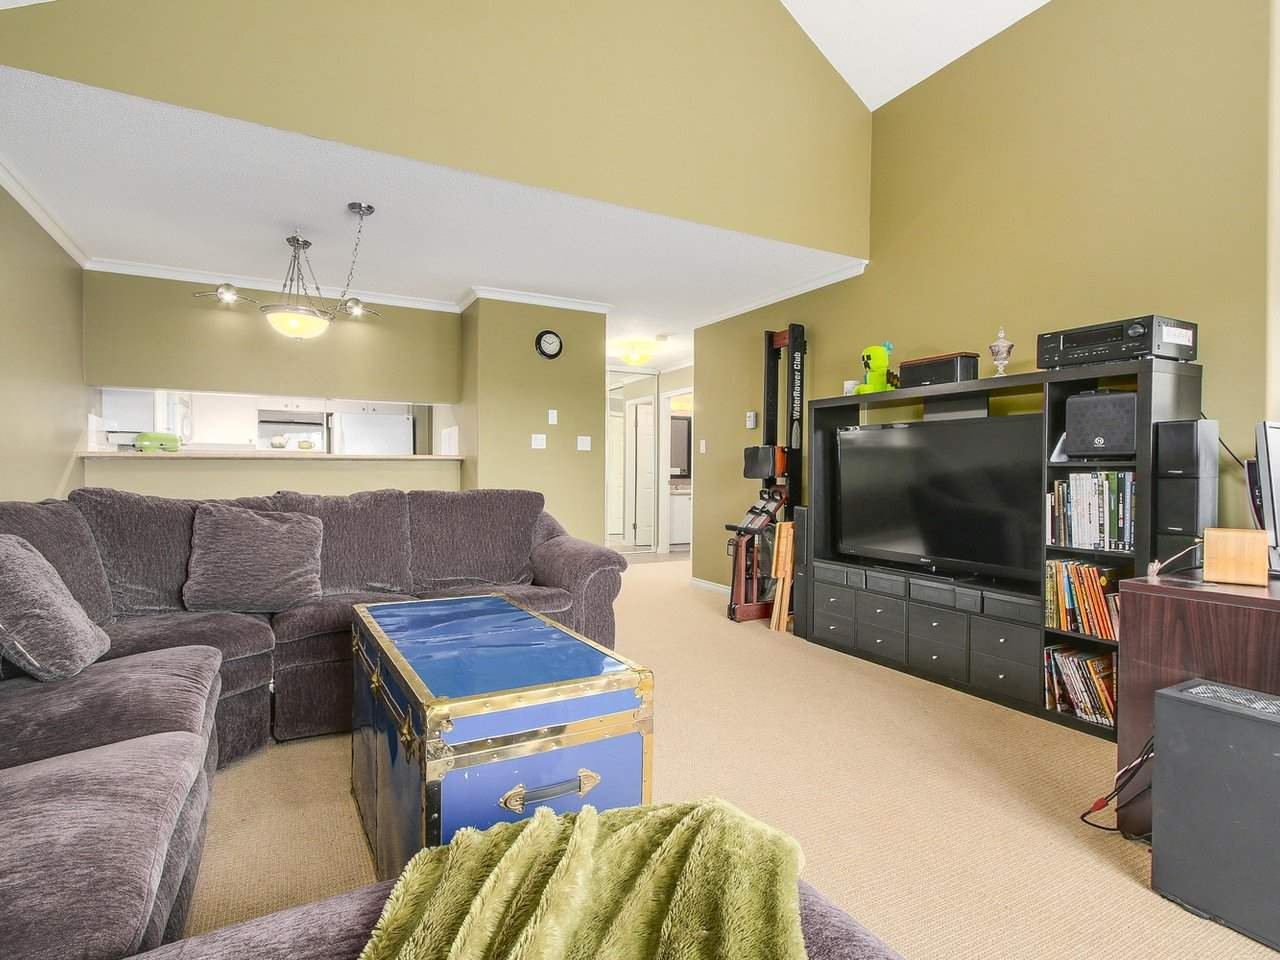 Photo 3: 304 8120 BENNETT Road in Richmond: Brighouse South Condo for sale : MLS® # R2191205